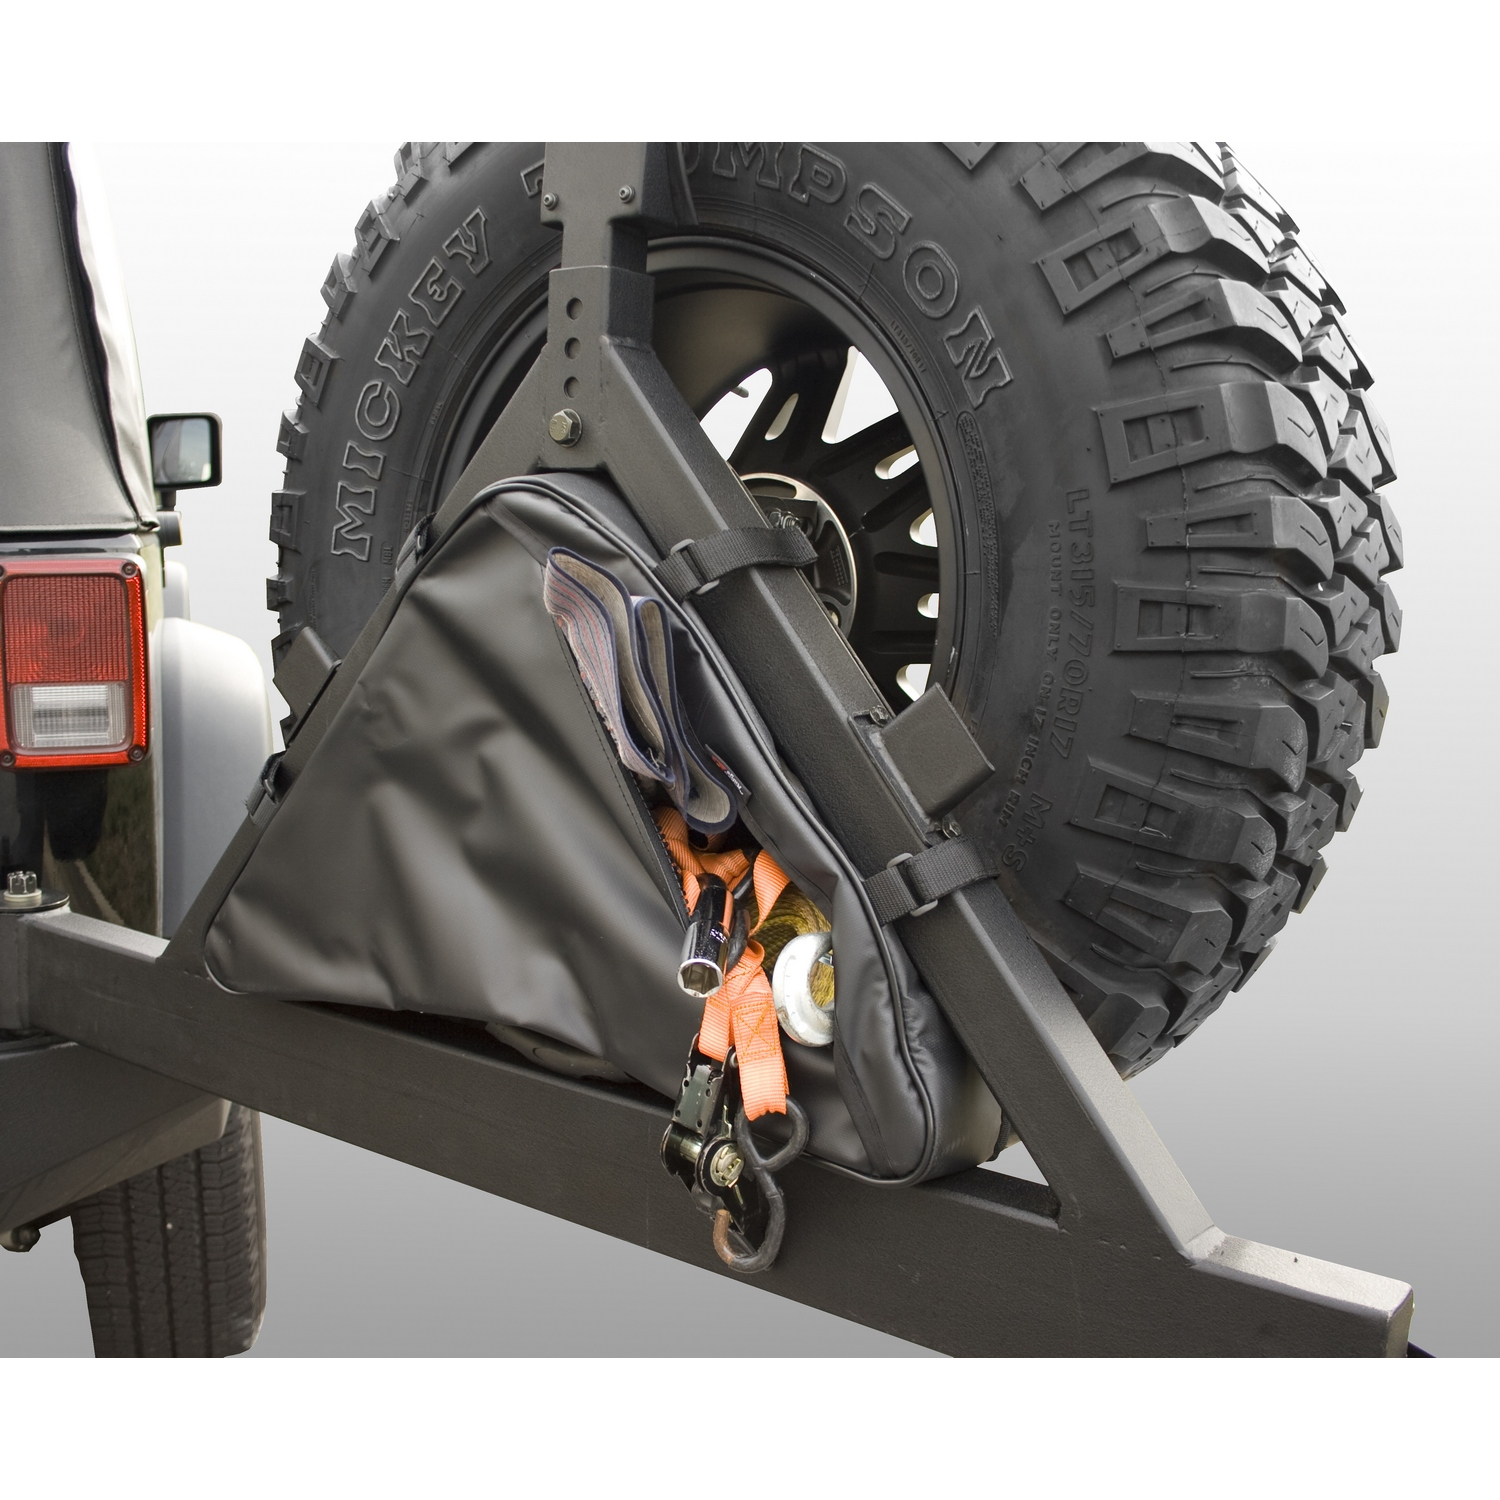 Rugged Ridge Triangular Storage Bag for Tire Carriers - TJ/YJ